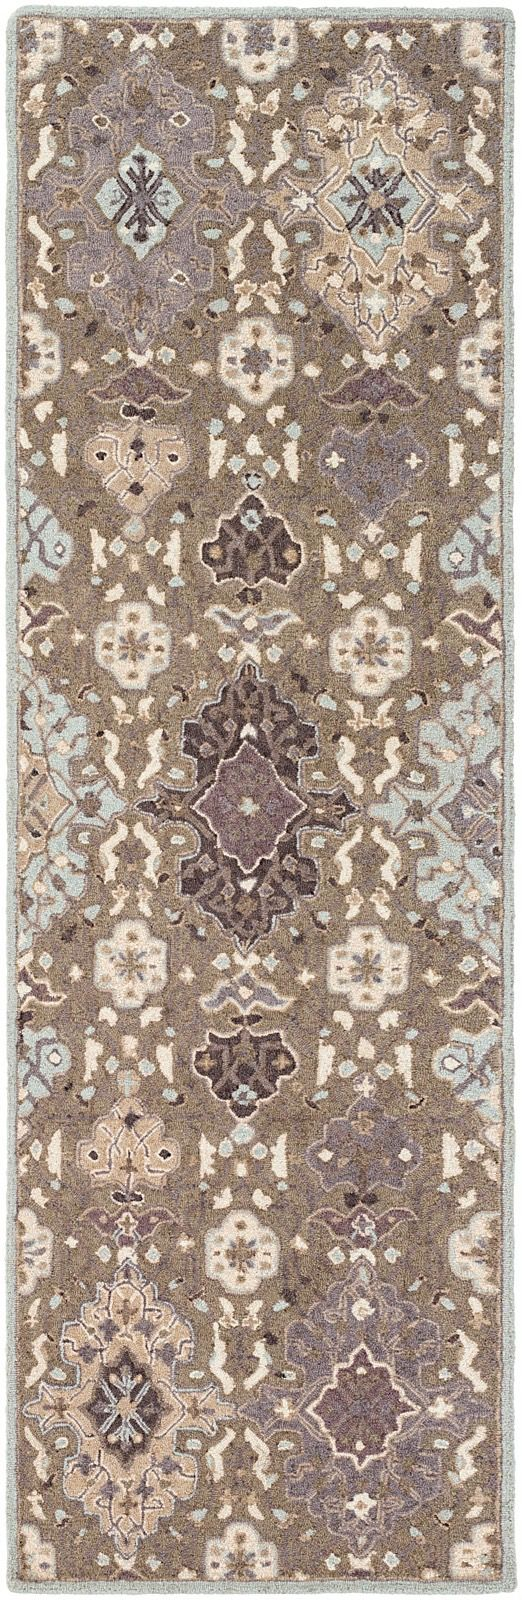 surya castille traditional area rug collection